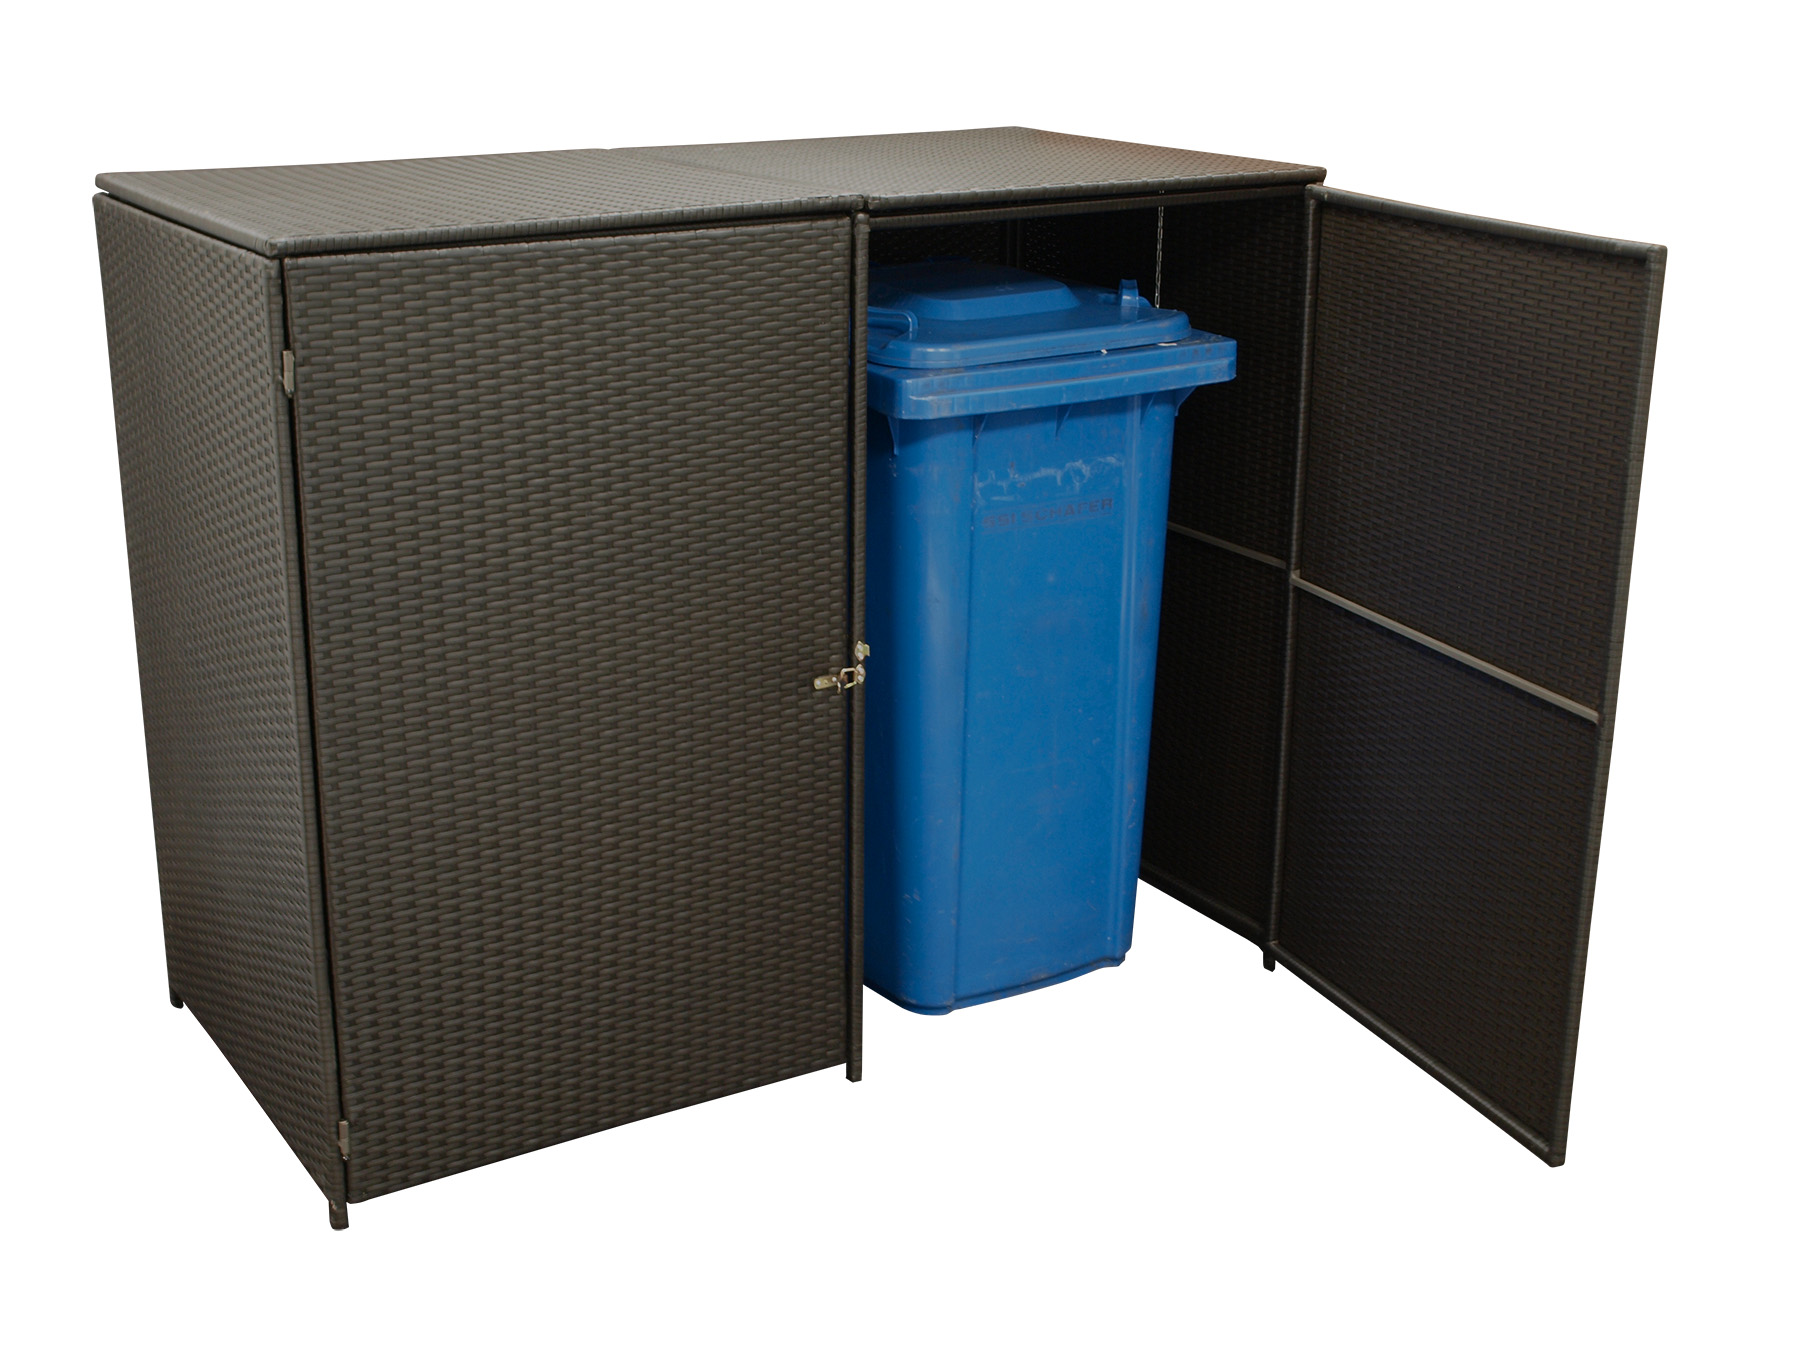 m lltonnenbox m lltonnenhaus box 2 er klein 120 liter 129x66x109cm rattan braun ebay. Black Bedroom Furniture Sets. Home Design Ideas